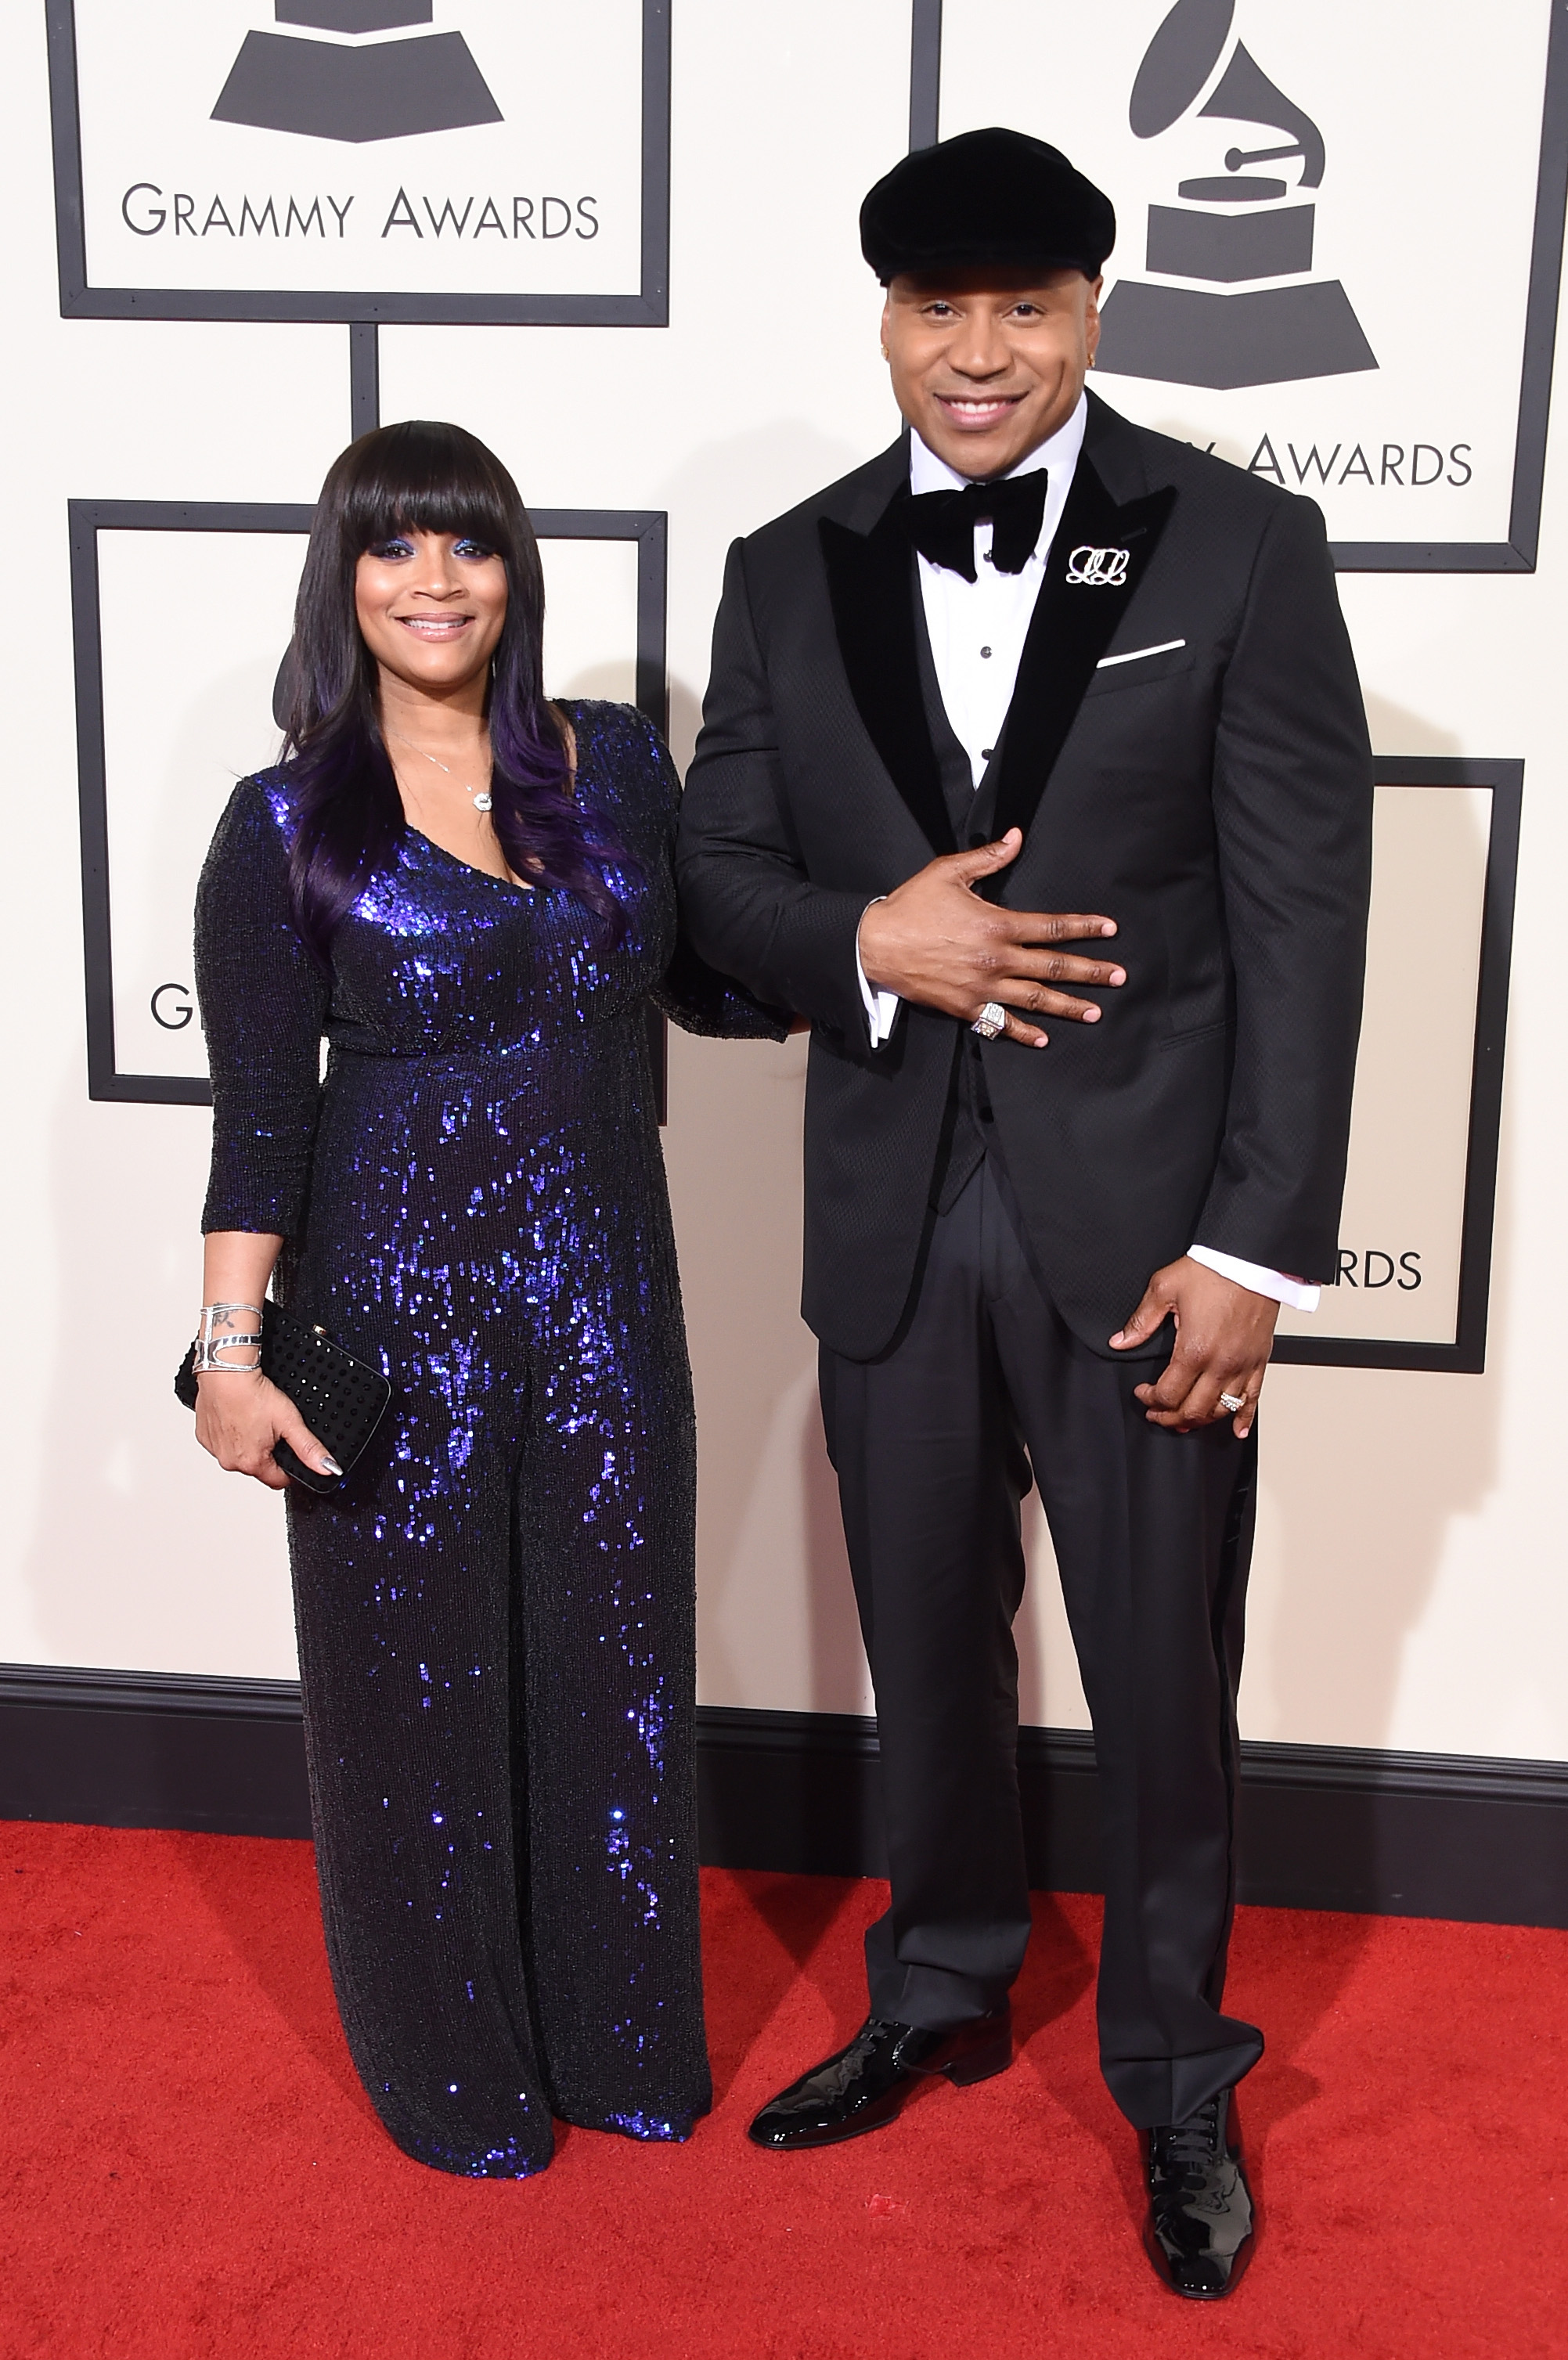 Simone Smith, left, and host LL Cool J, right, attend the 58th GRAMMY Awards at Staples Center on Feb. 15, 2016 in Los Angeles.